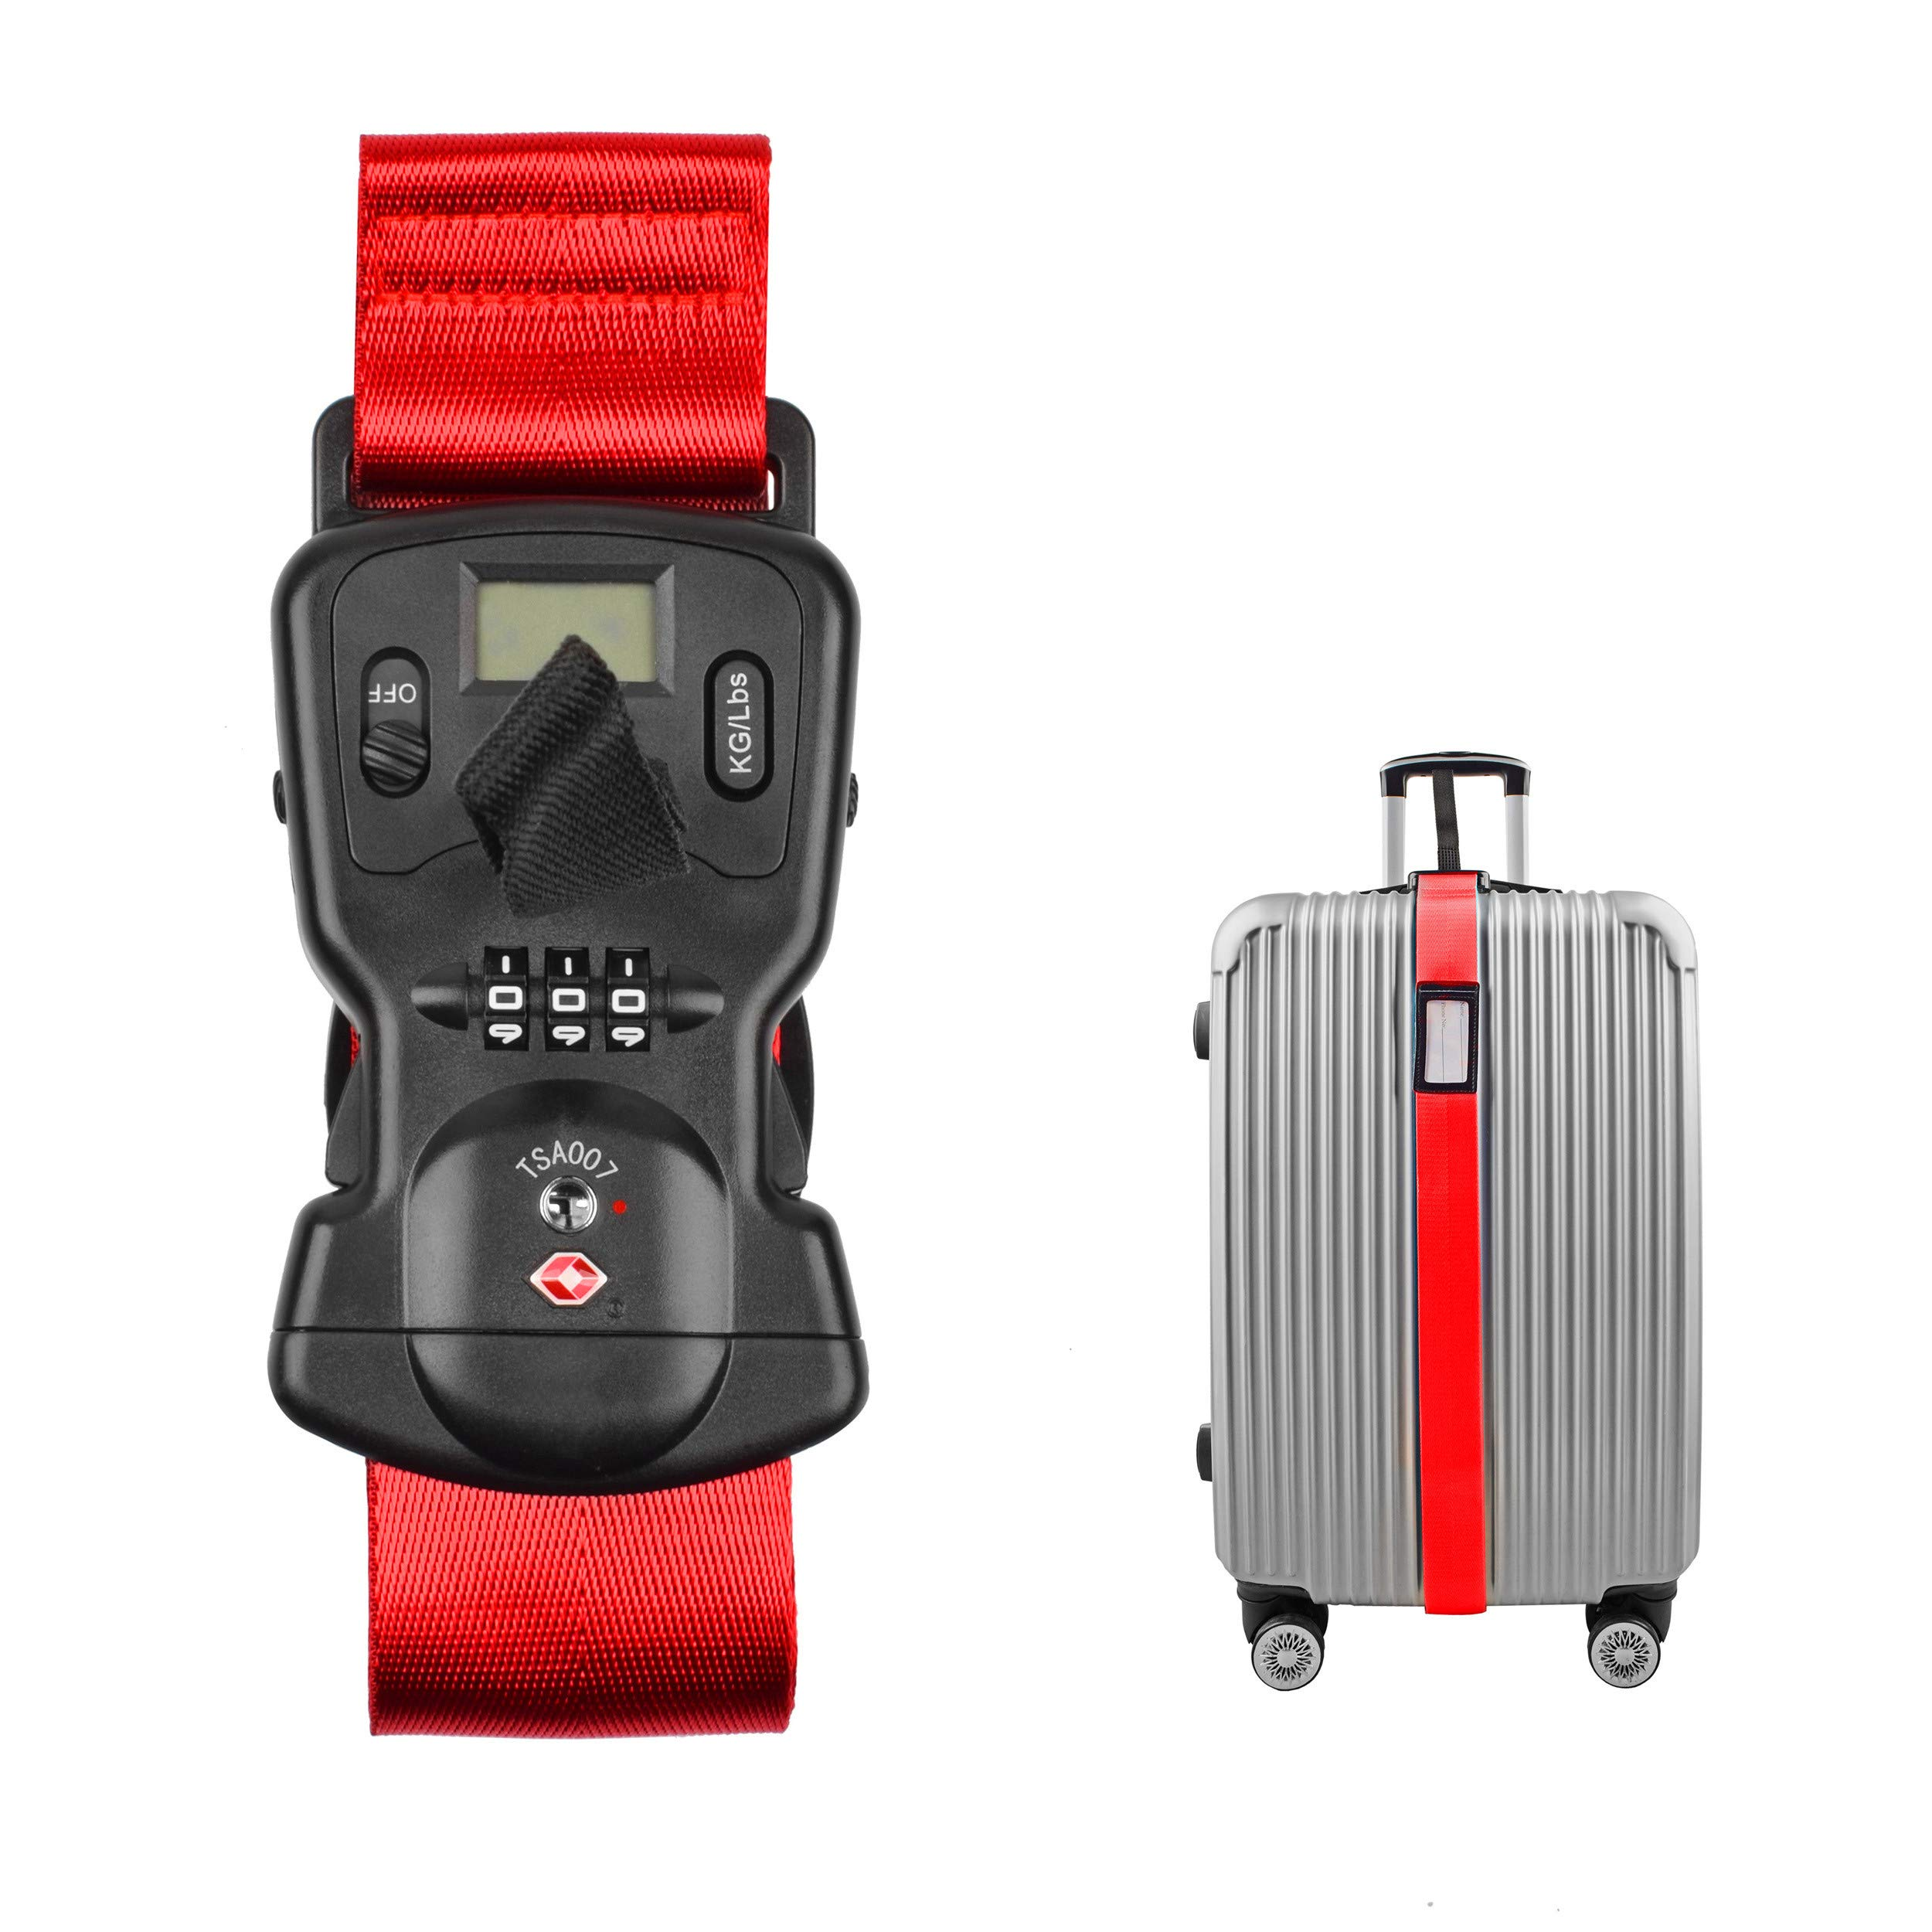 Smaior TSA Approved Luggage Straps Suitcase Belts, Baggage Straps Electronic Scale Password Lock-Available in 3 colors(Red) by Smaior